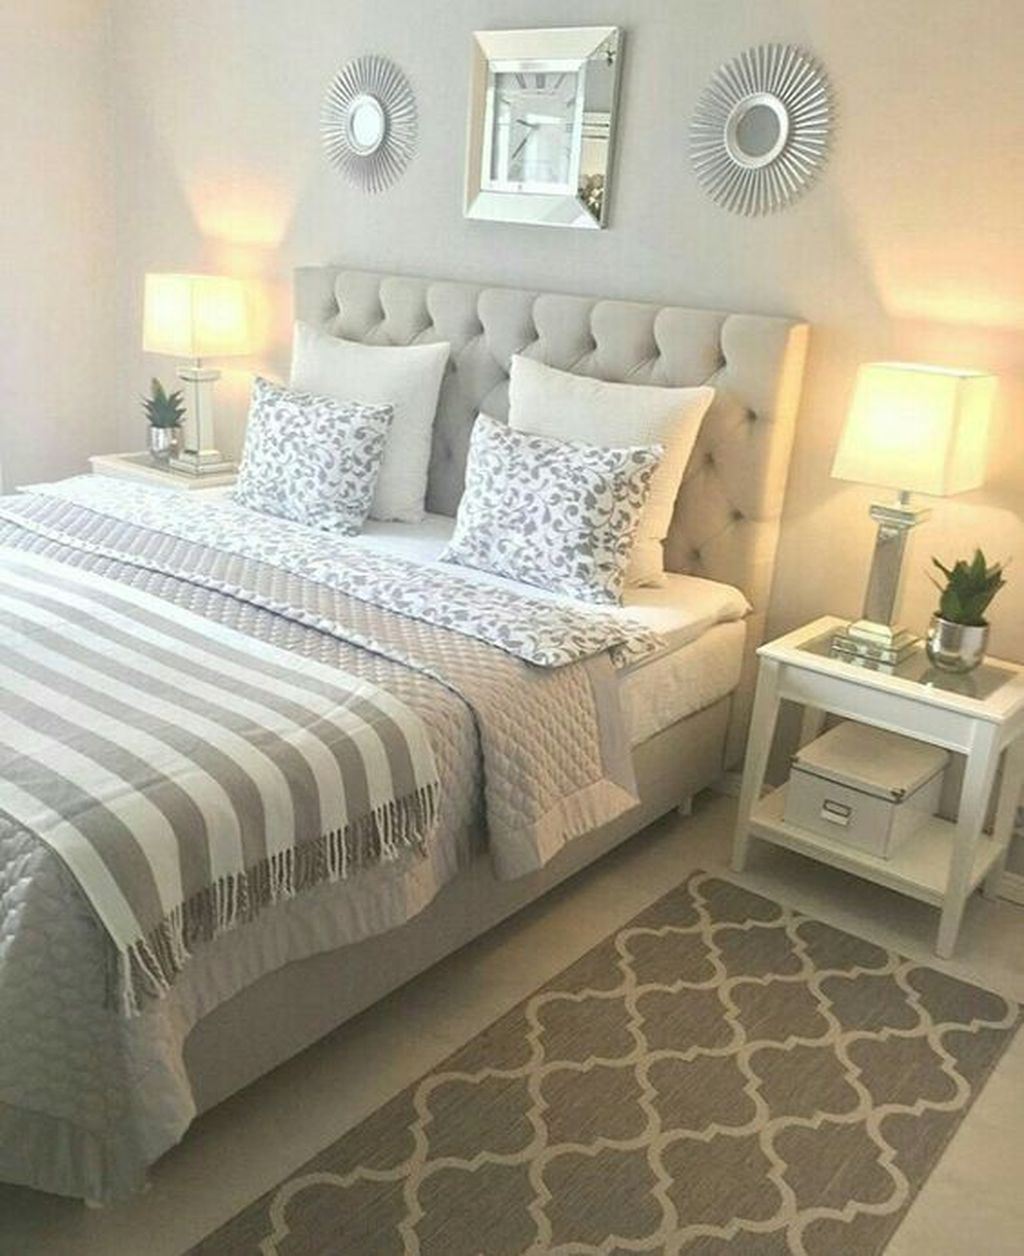 44 cozy bedroom design ideas to make your sleep more on stunning minimalist apartment décor ideas home decor for your small apartment id=98322